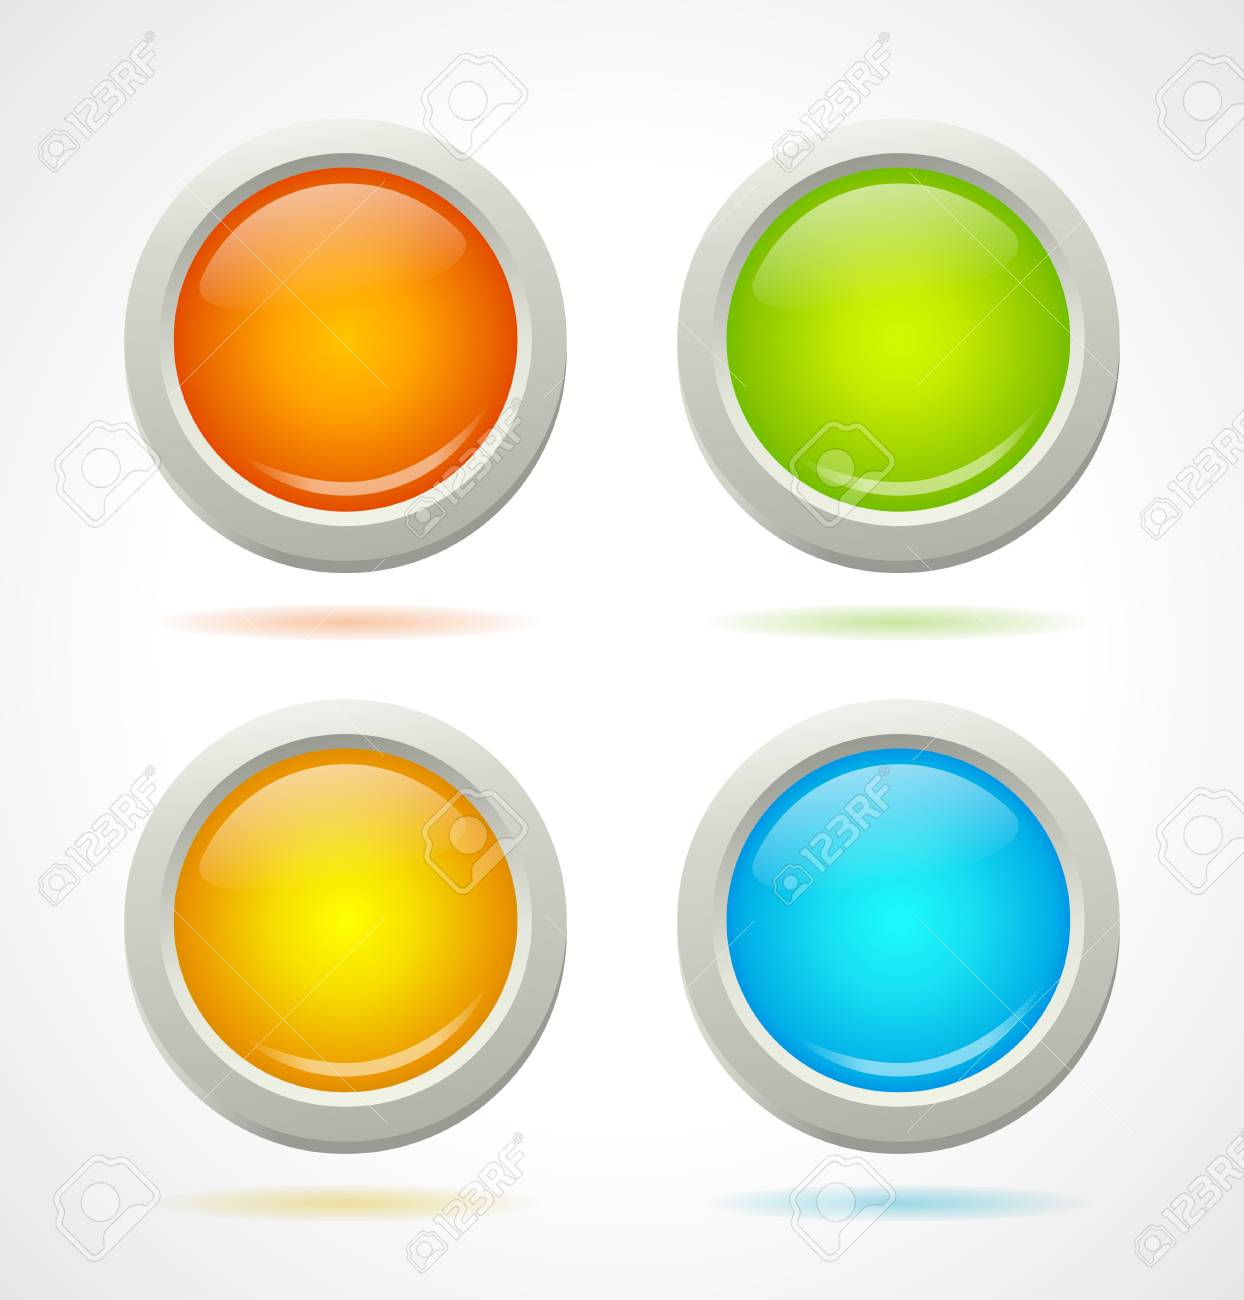 Shine colorful buttons template   illustration Stock Vector - 21324409